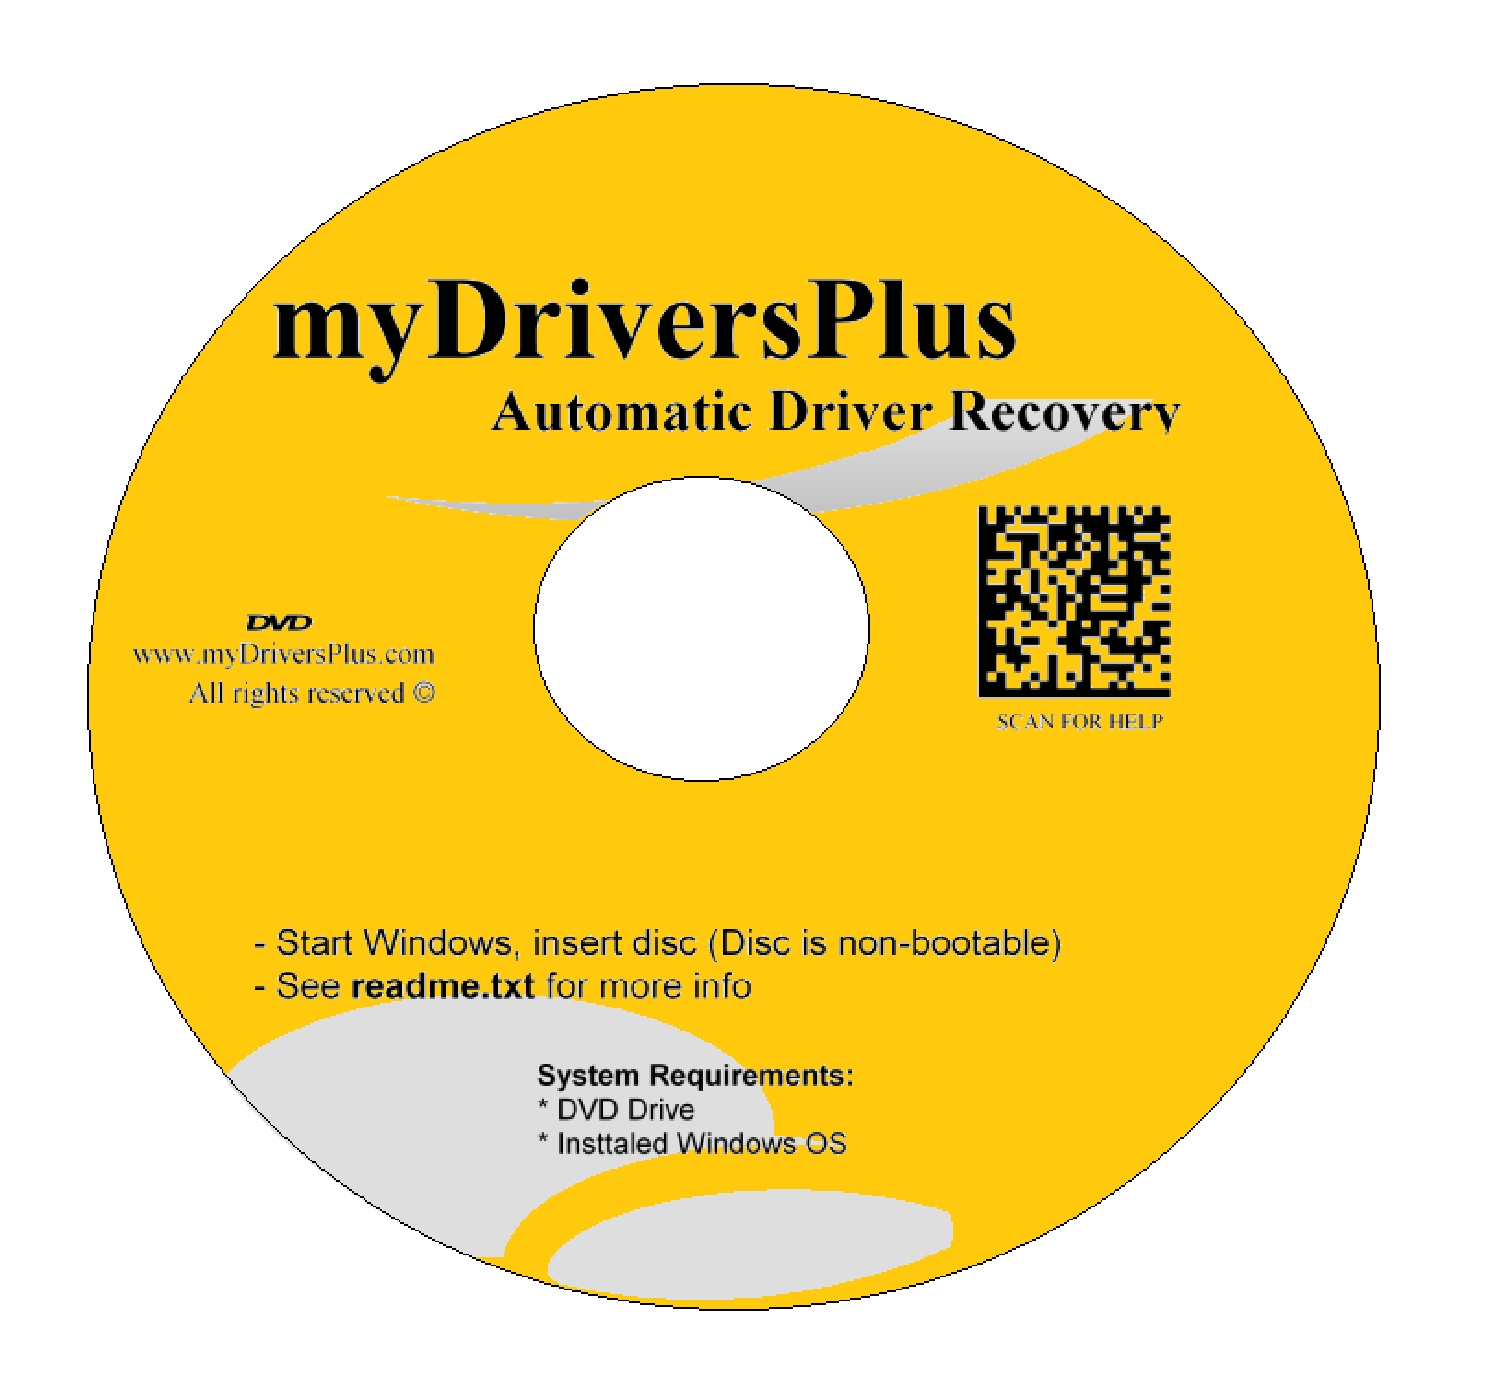 Windows 8 Universal Drivers Recovery Restore Resource Utilities Software with Automatic One-Click Installer Unattended for Internet, Wi-Fi, Ethernet, Video, Sound, Audio, USB, Devices, Chipset ...(DV